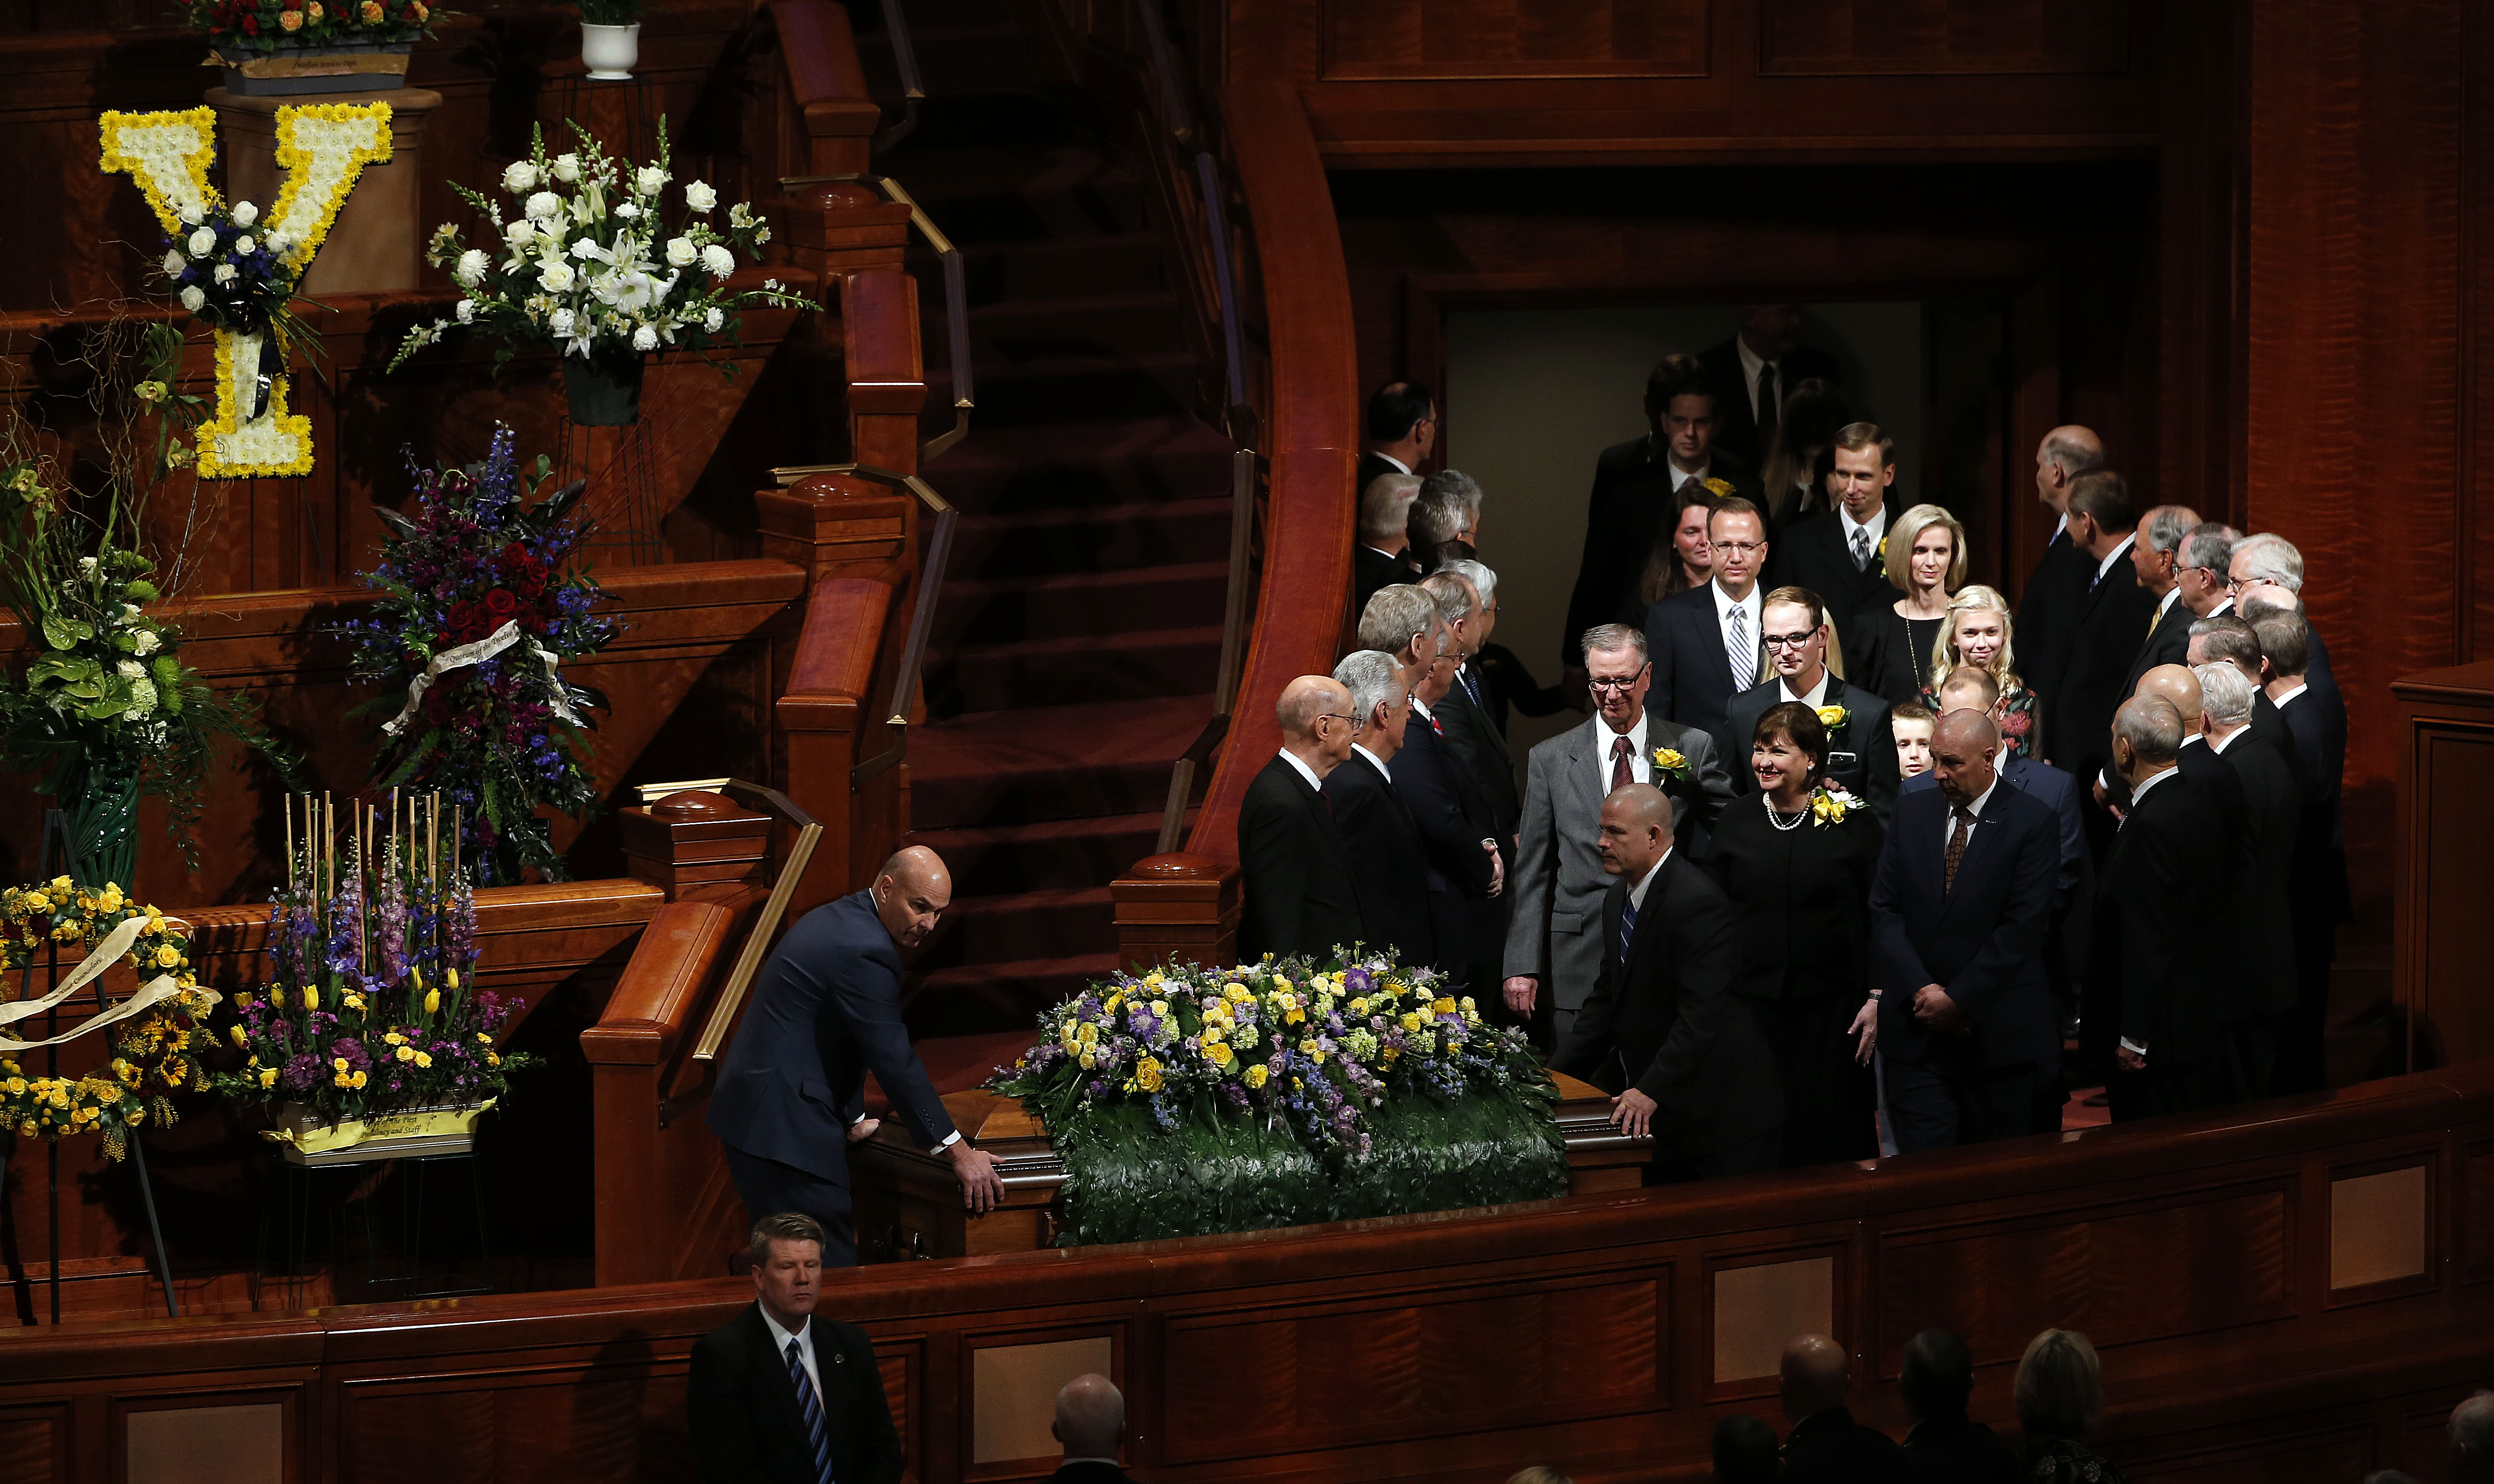 President Thomas S. Monson's casket is brought into the Conference Center in Salt Lake City on Friday, Jan. 12, 2018.